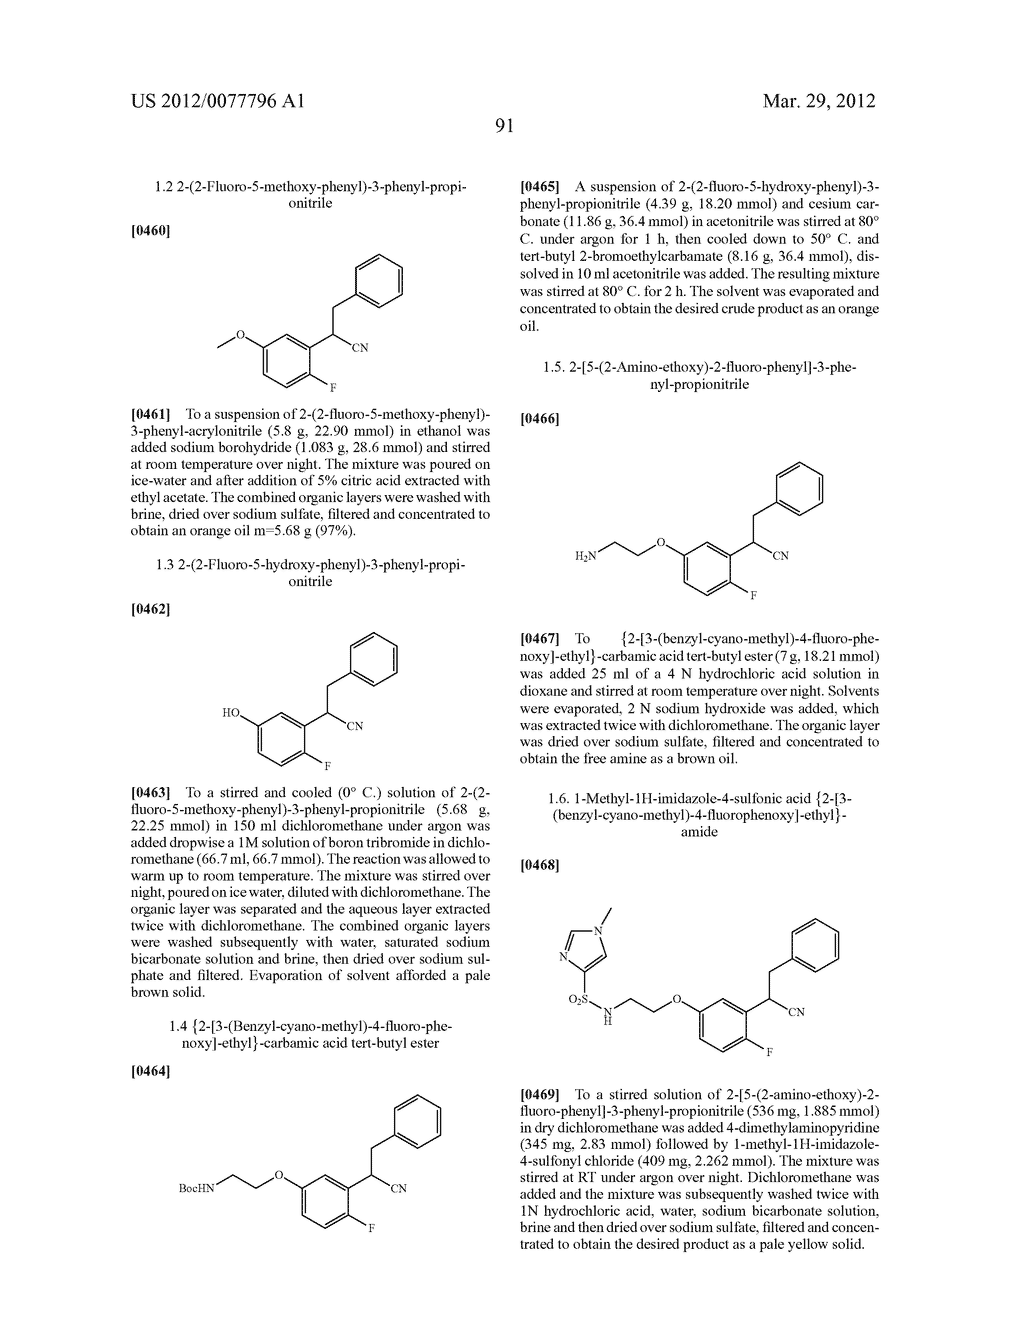 PHENALKYLAMINE DERIVATIVES, PHARMACEUTICAL COMPOSITIONS CONTAINING THEM,     AND THEIR USE IN THERAPY - diagram, schematic, and image 92